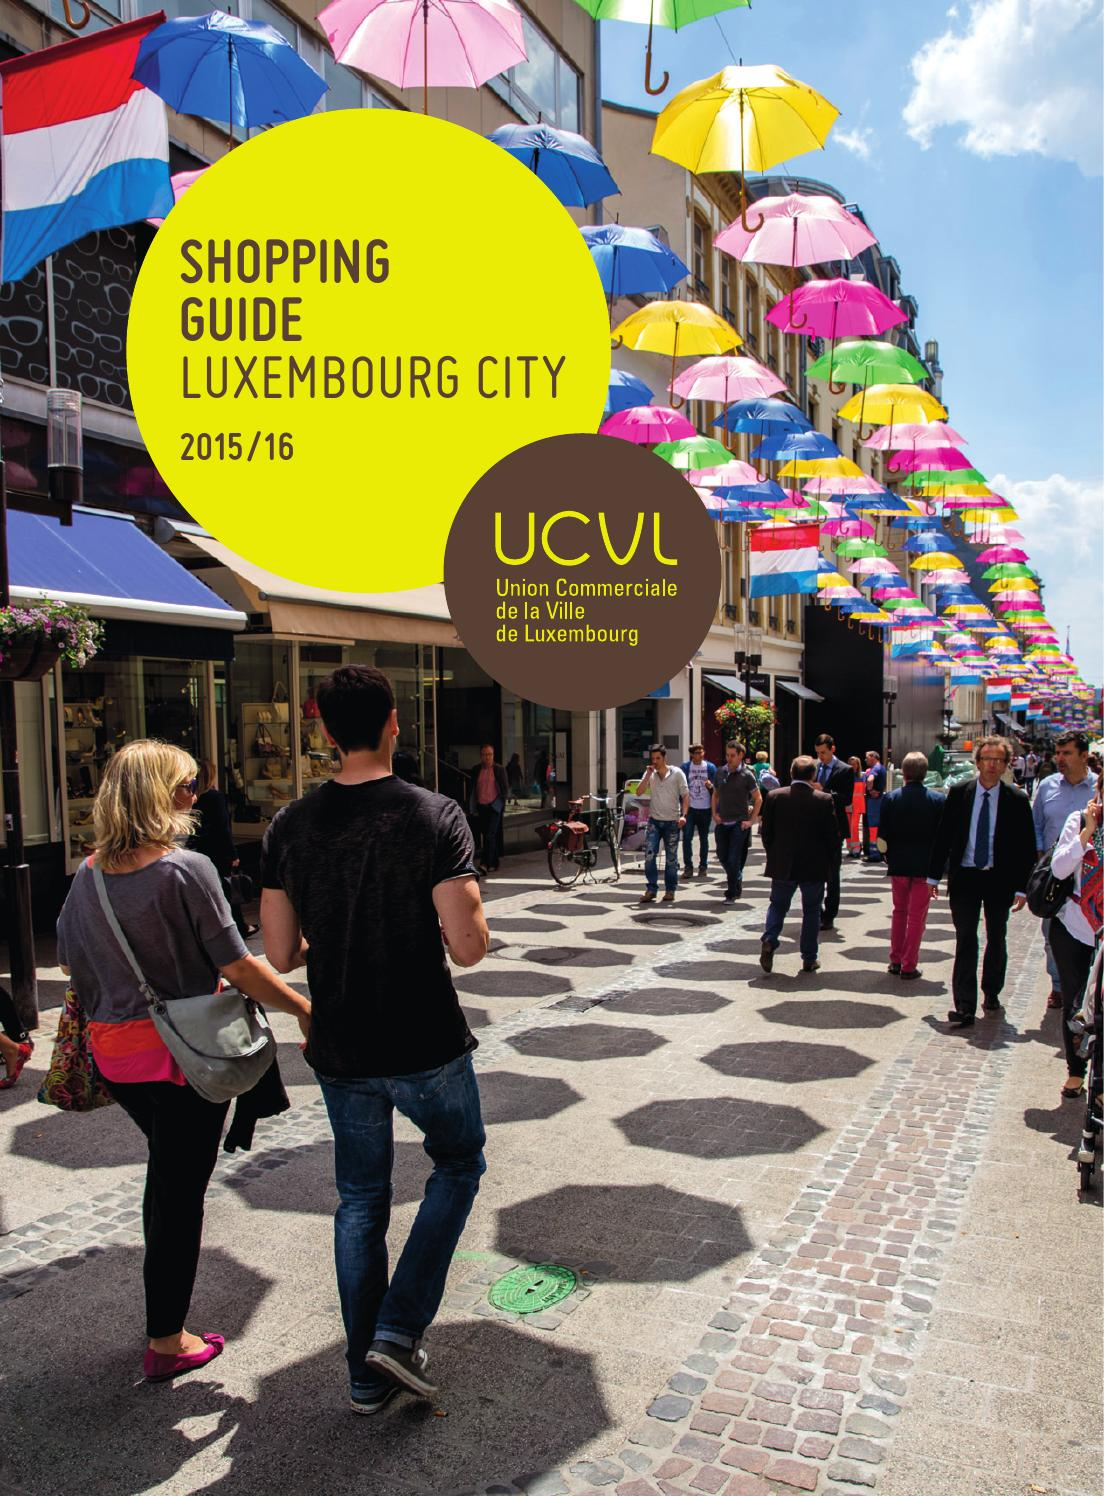 Shopping Guide Luxembourg City by Cityshopping issuu